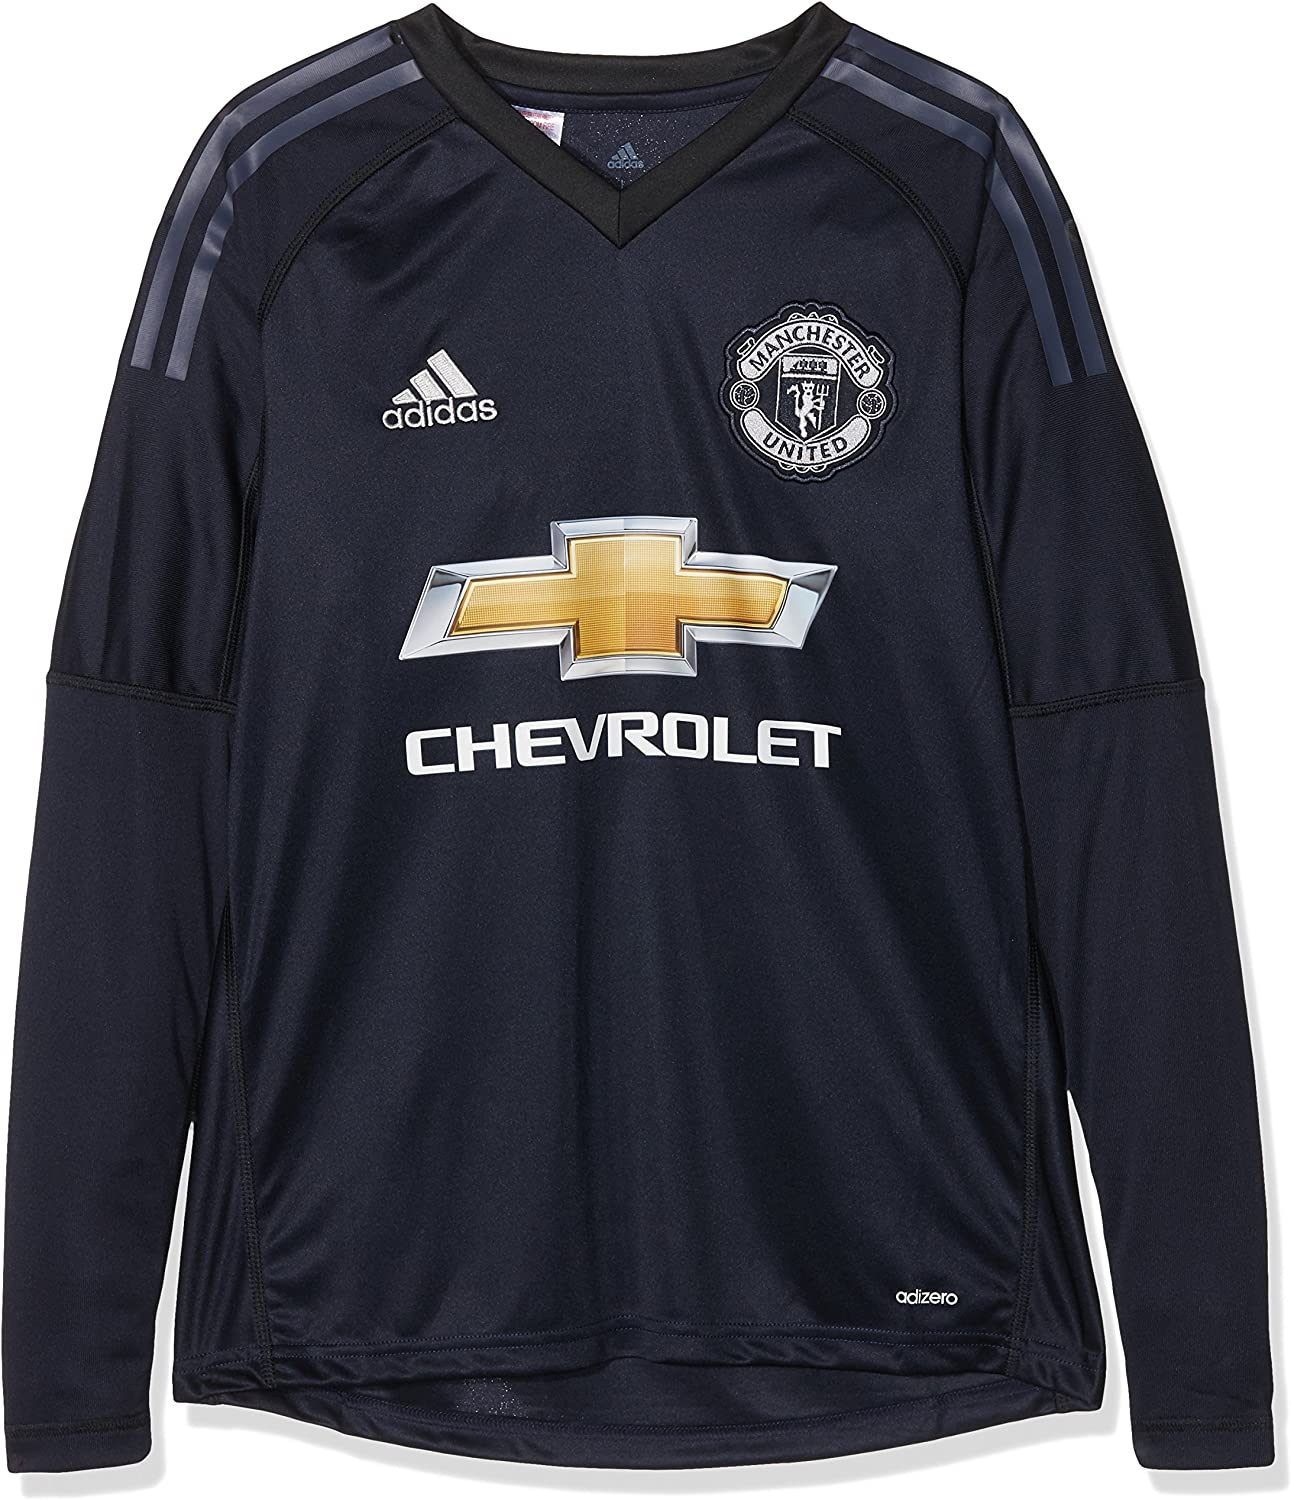 Adidas Children S Manchester United Goalkeeper Shirt Amazon Co Uk Clothing